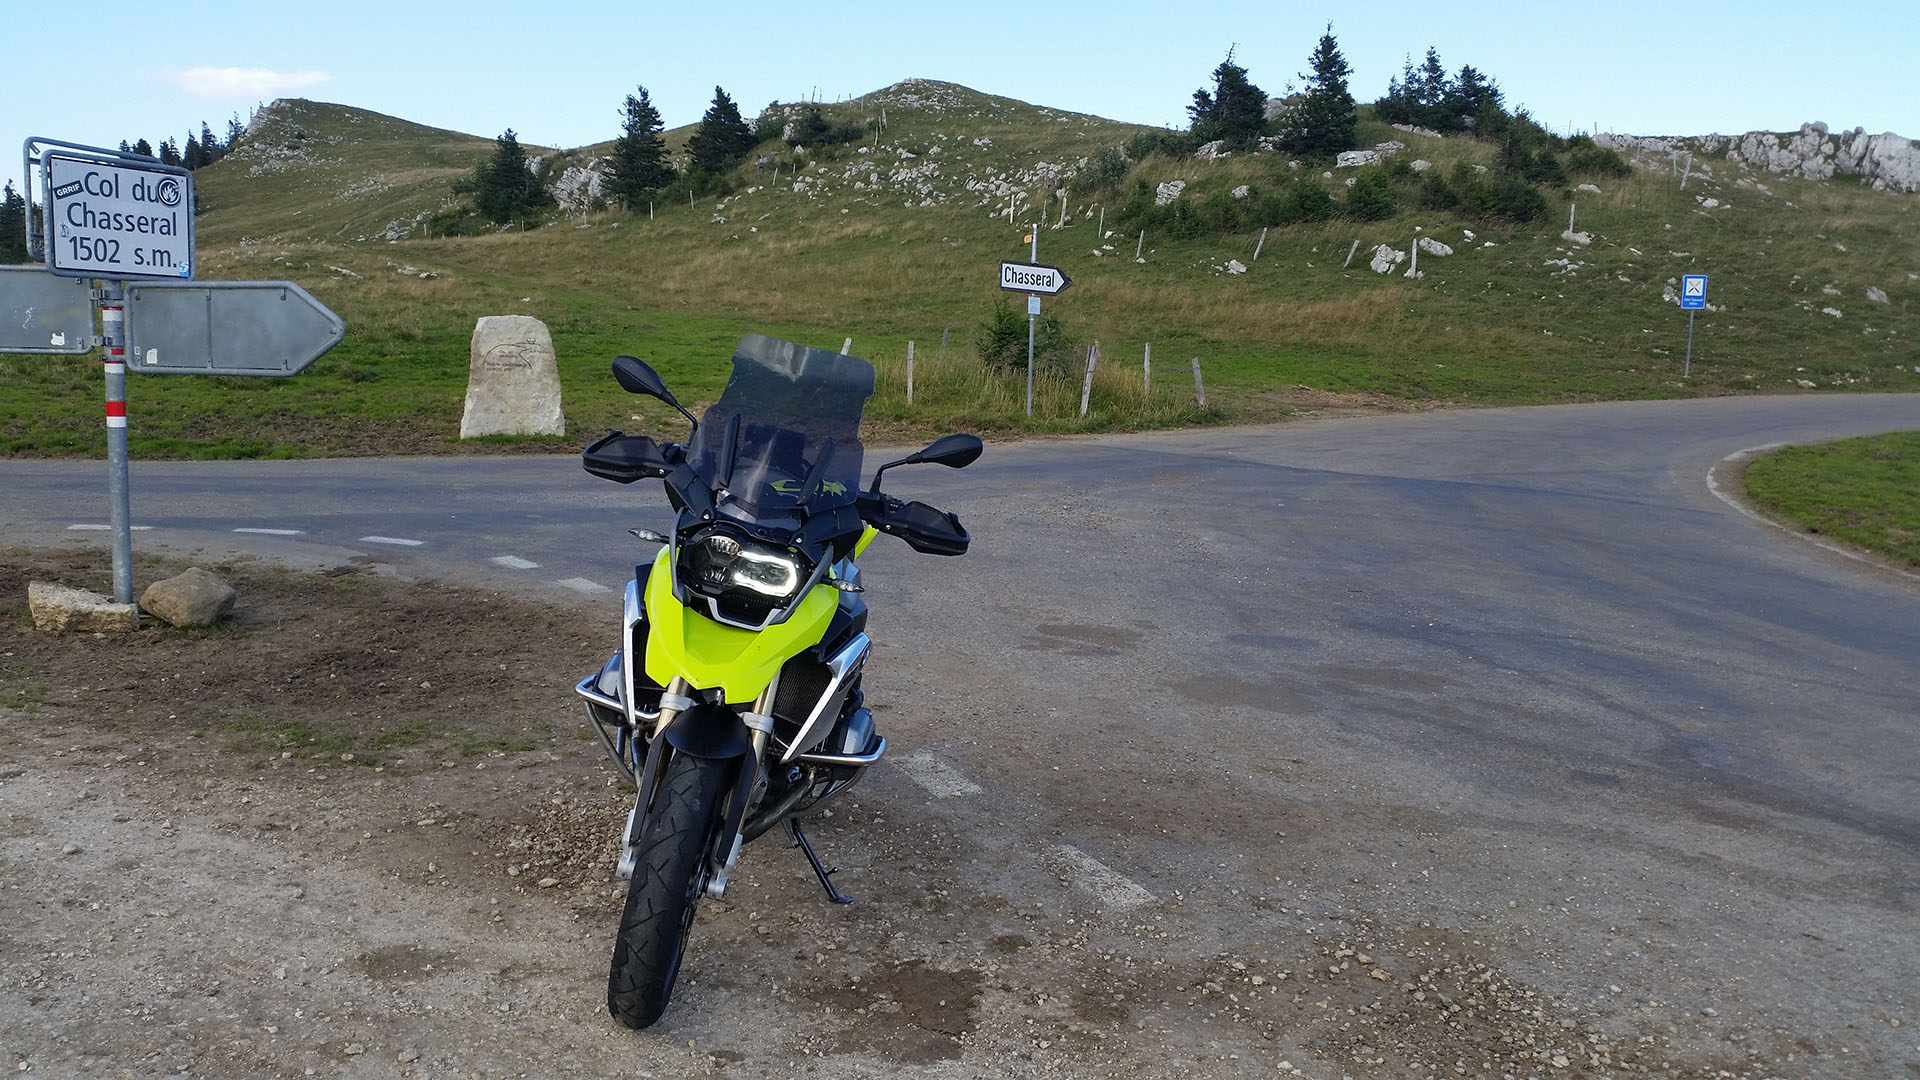 1502 - CH - Col du Chasseral